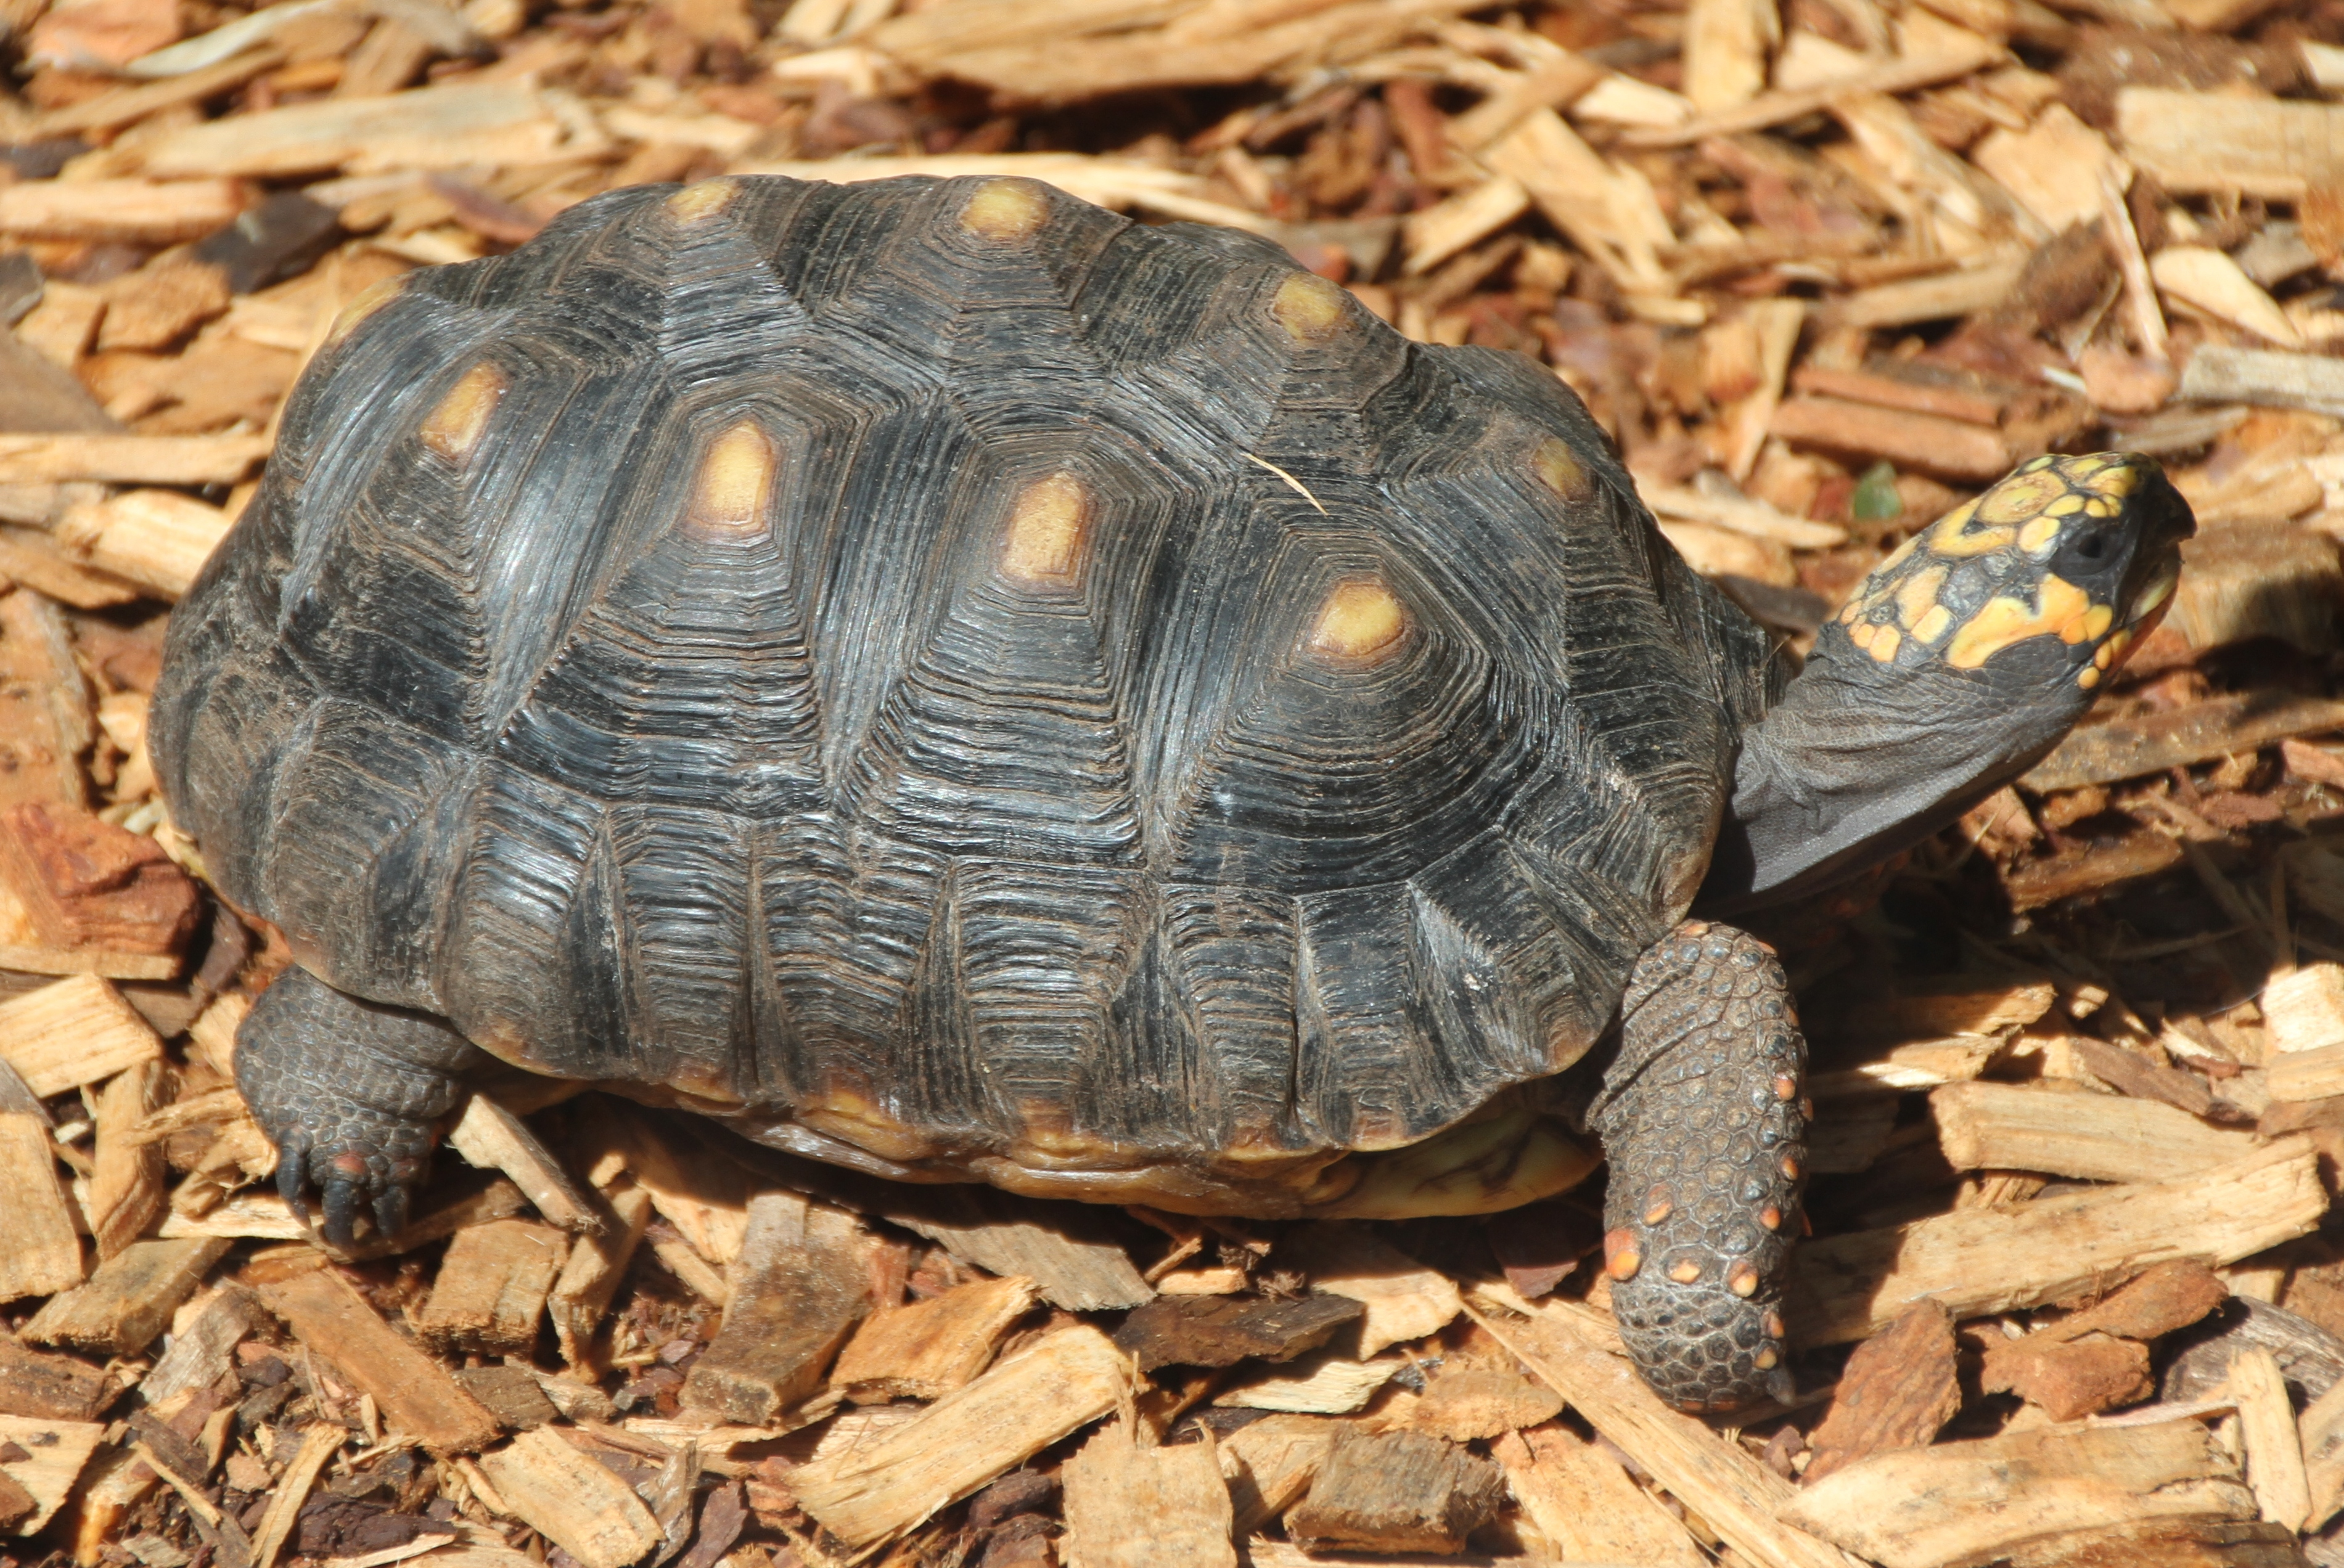 Red-footed tortoise - Wikipedia